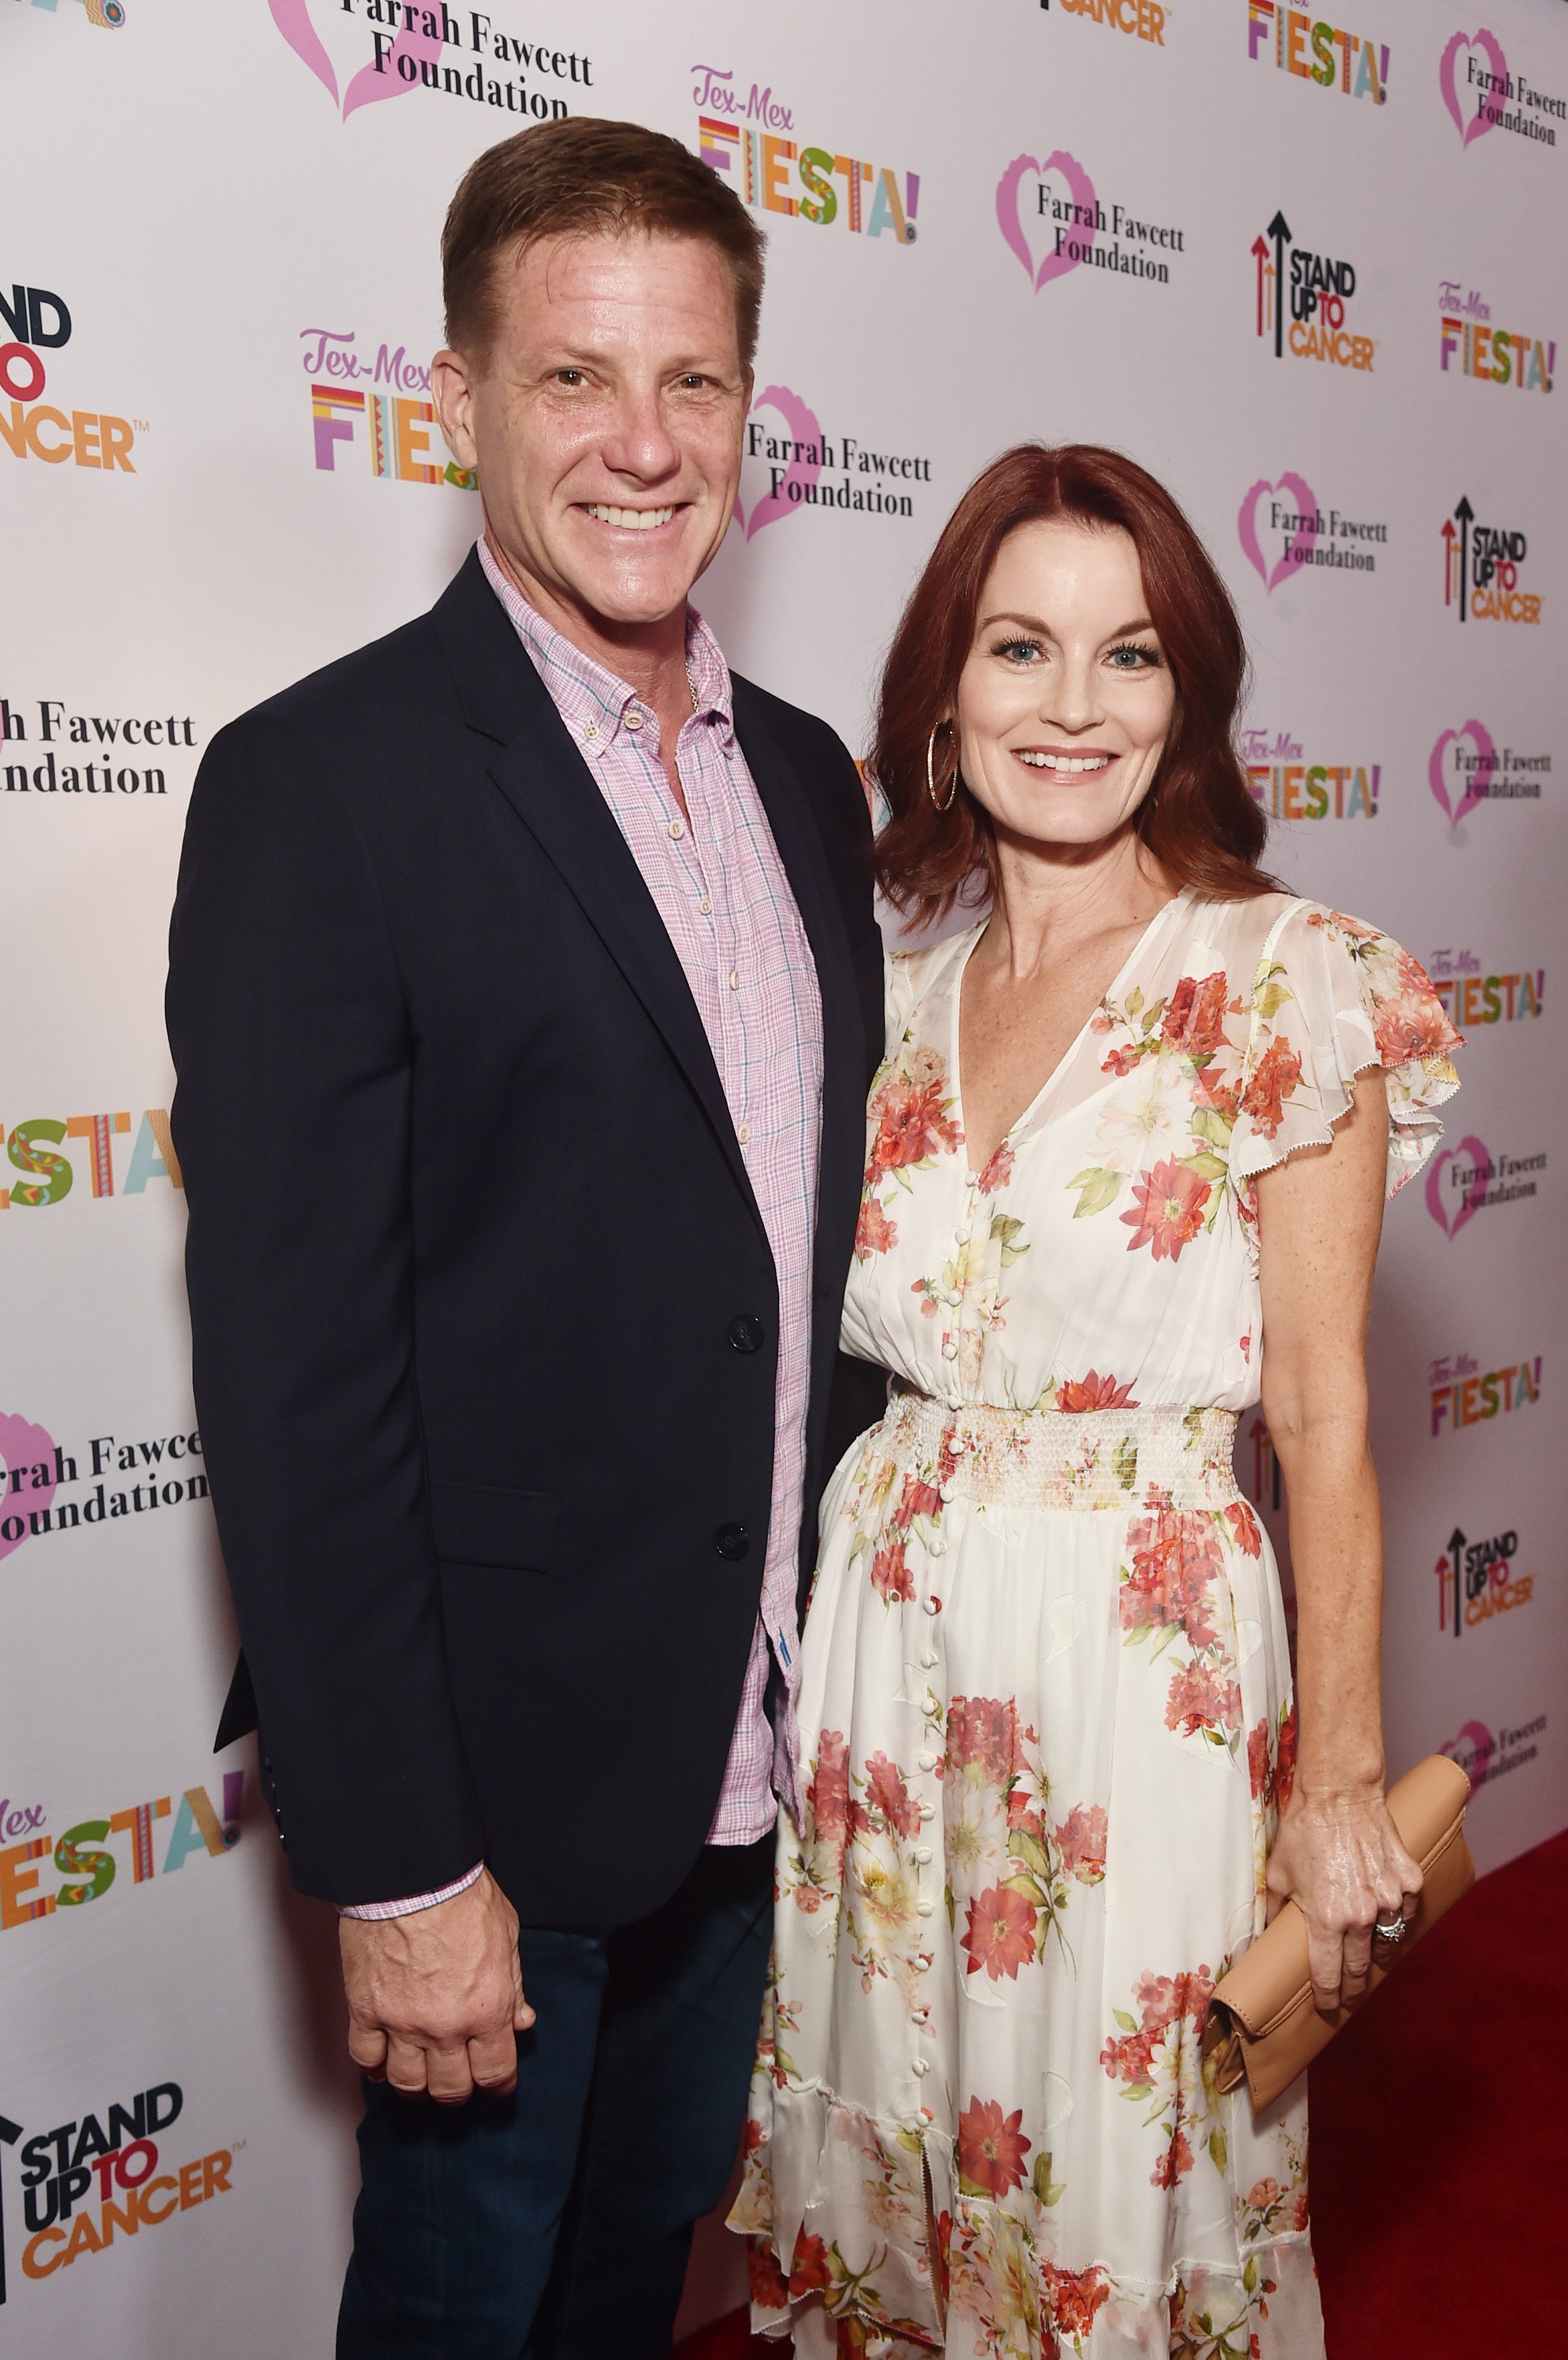 Doug Savant and Laura Leighton at the Farrah Fawcett Foundation's Tex-Mex Fiesta | Source: Getty Images